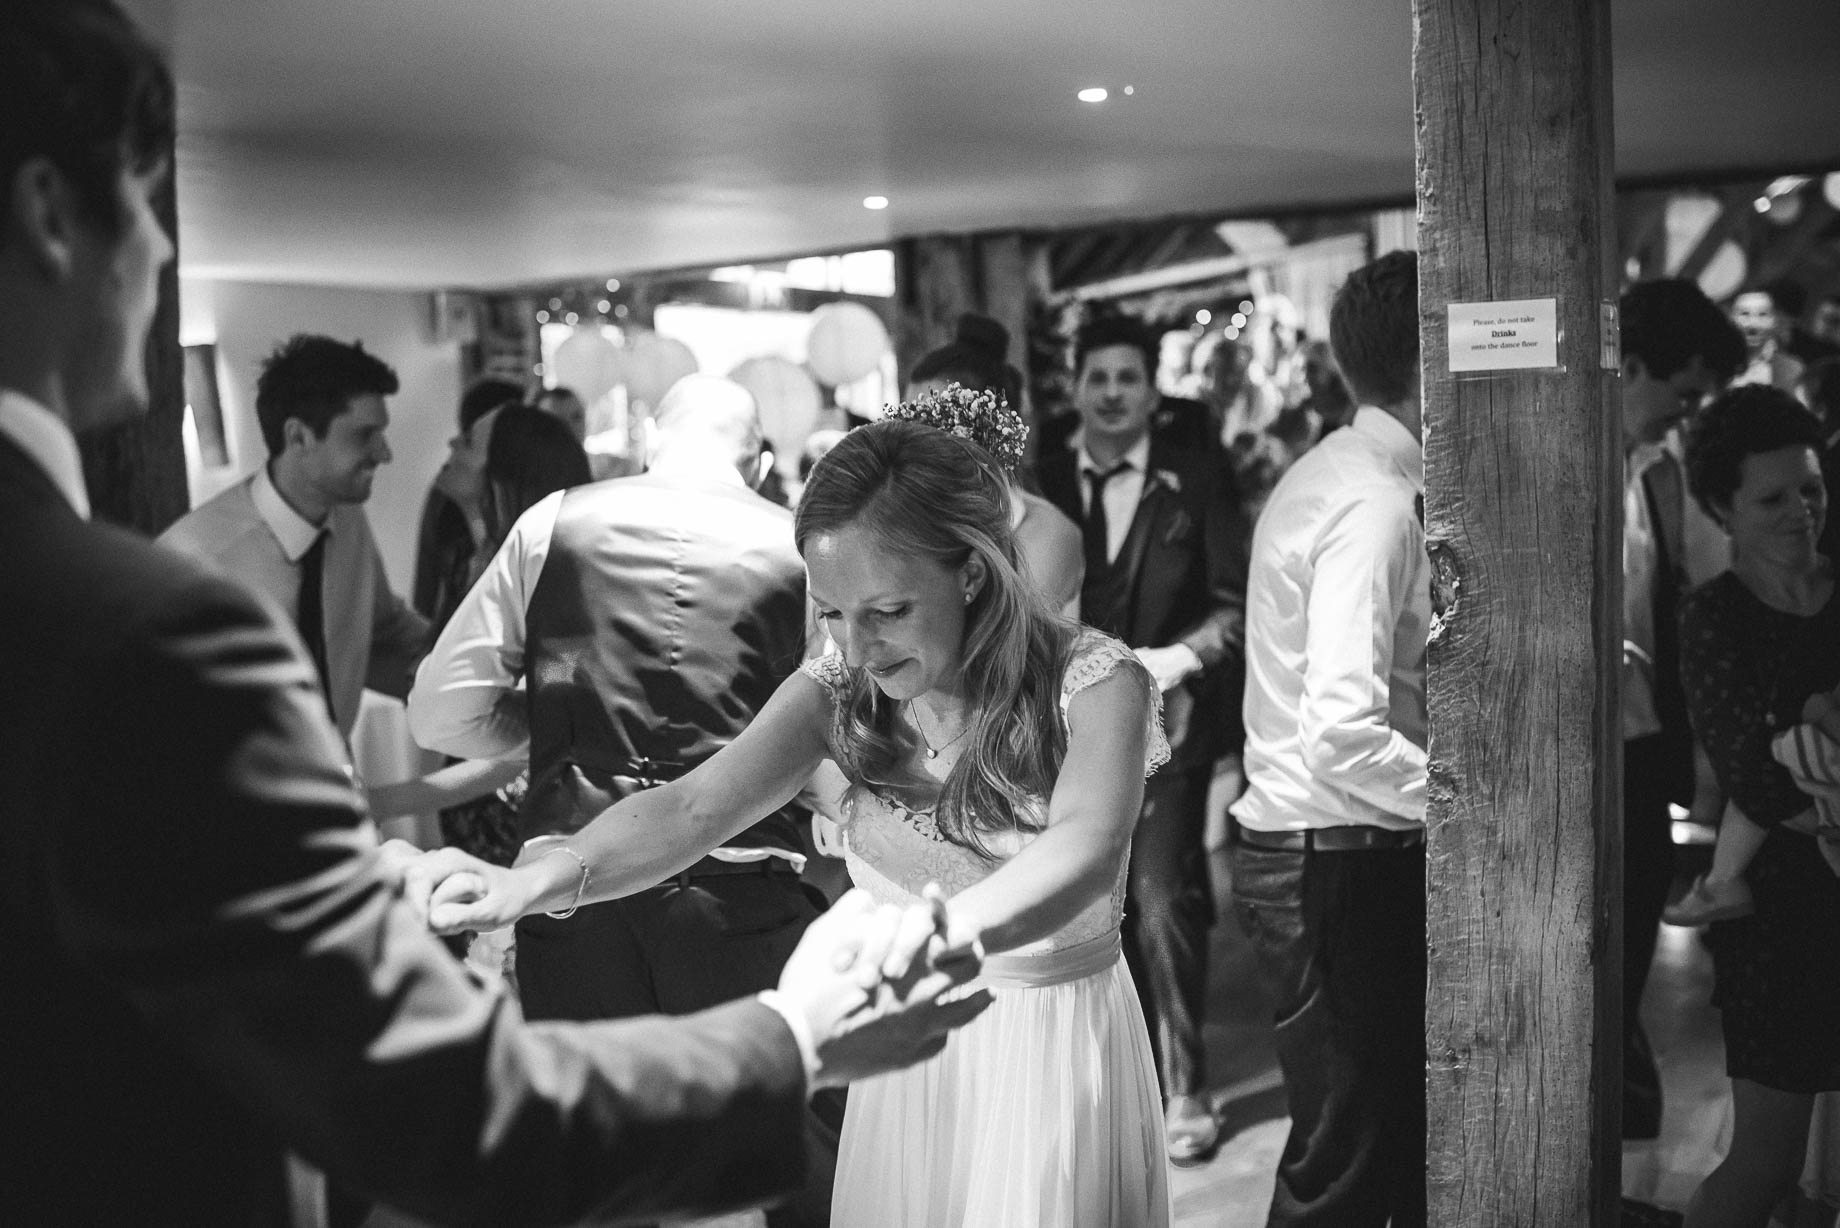 Bury Court Barn wedding photography by Guy Collier - Heather and Pat (168 of 170)